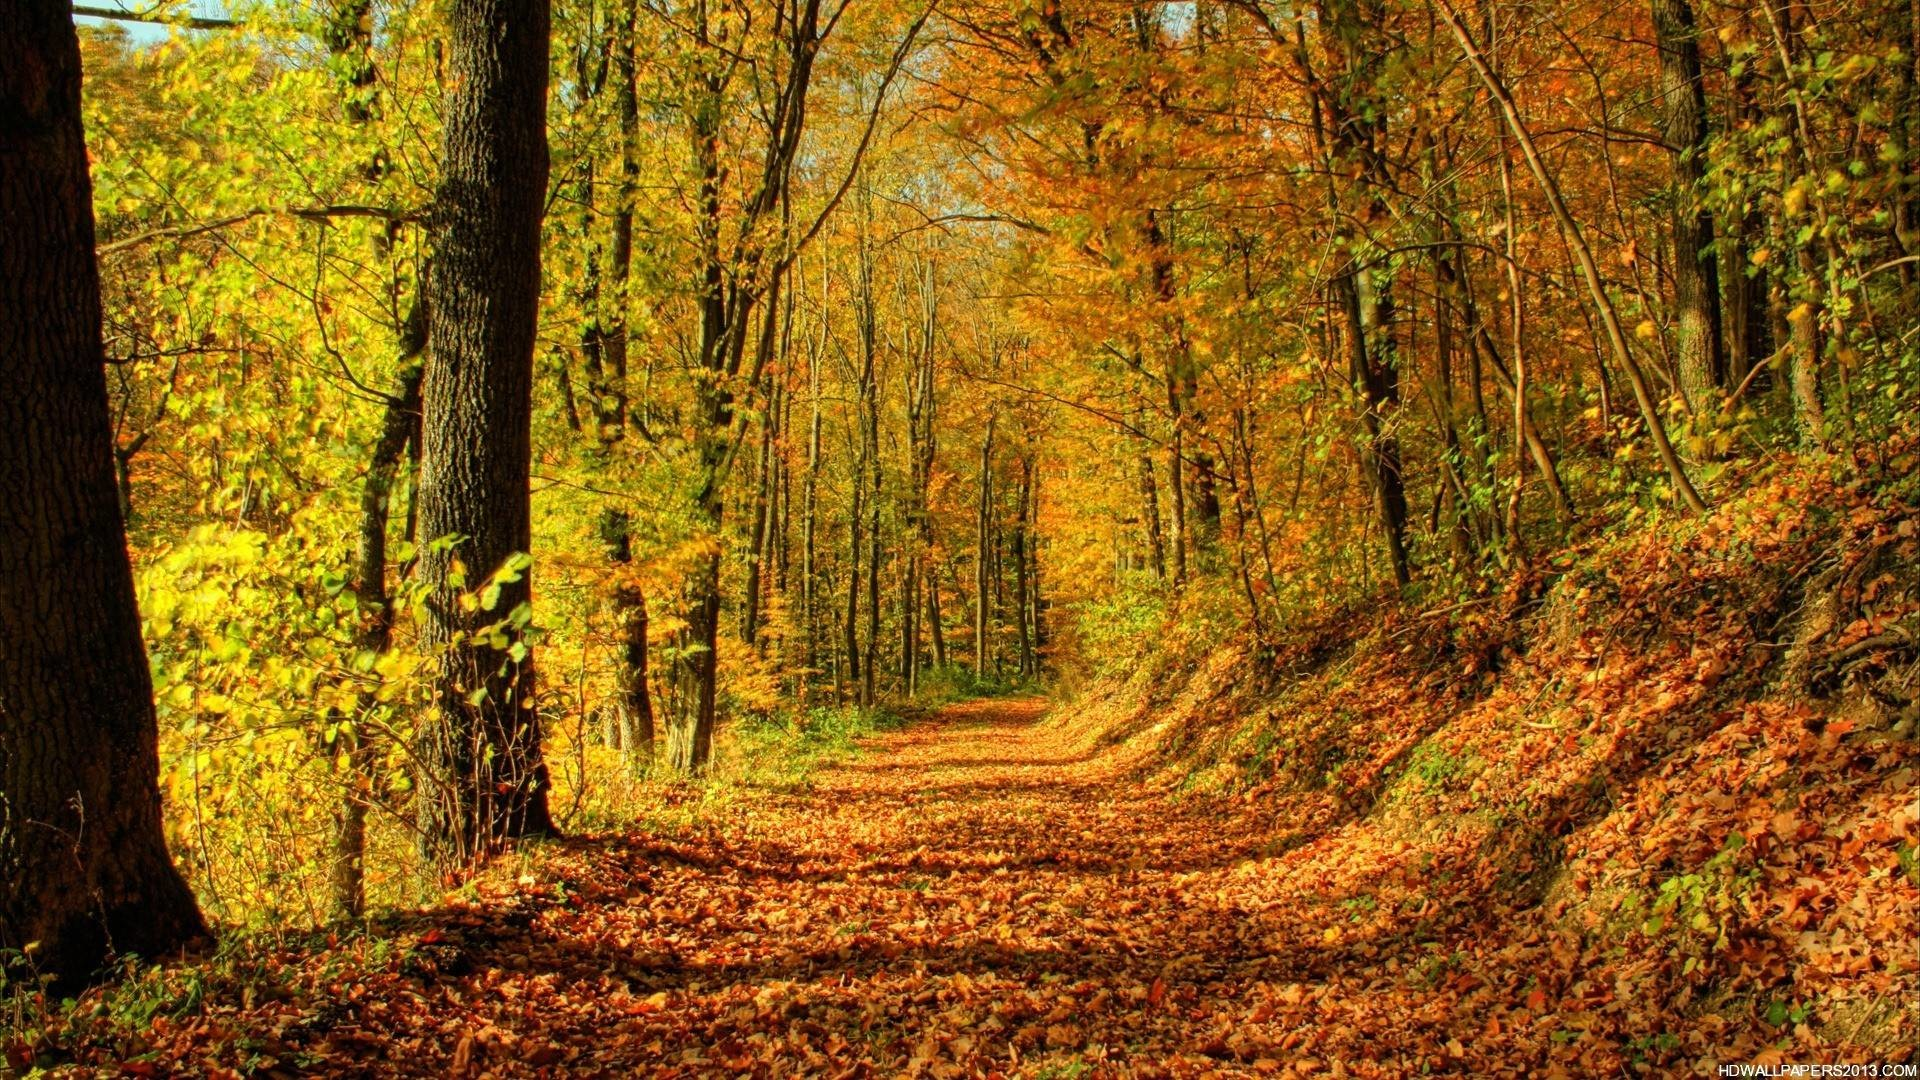 Fall Background Images Free – Wallpaper Cave